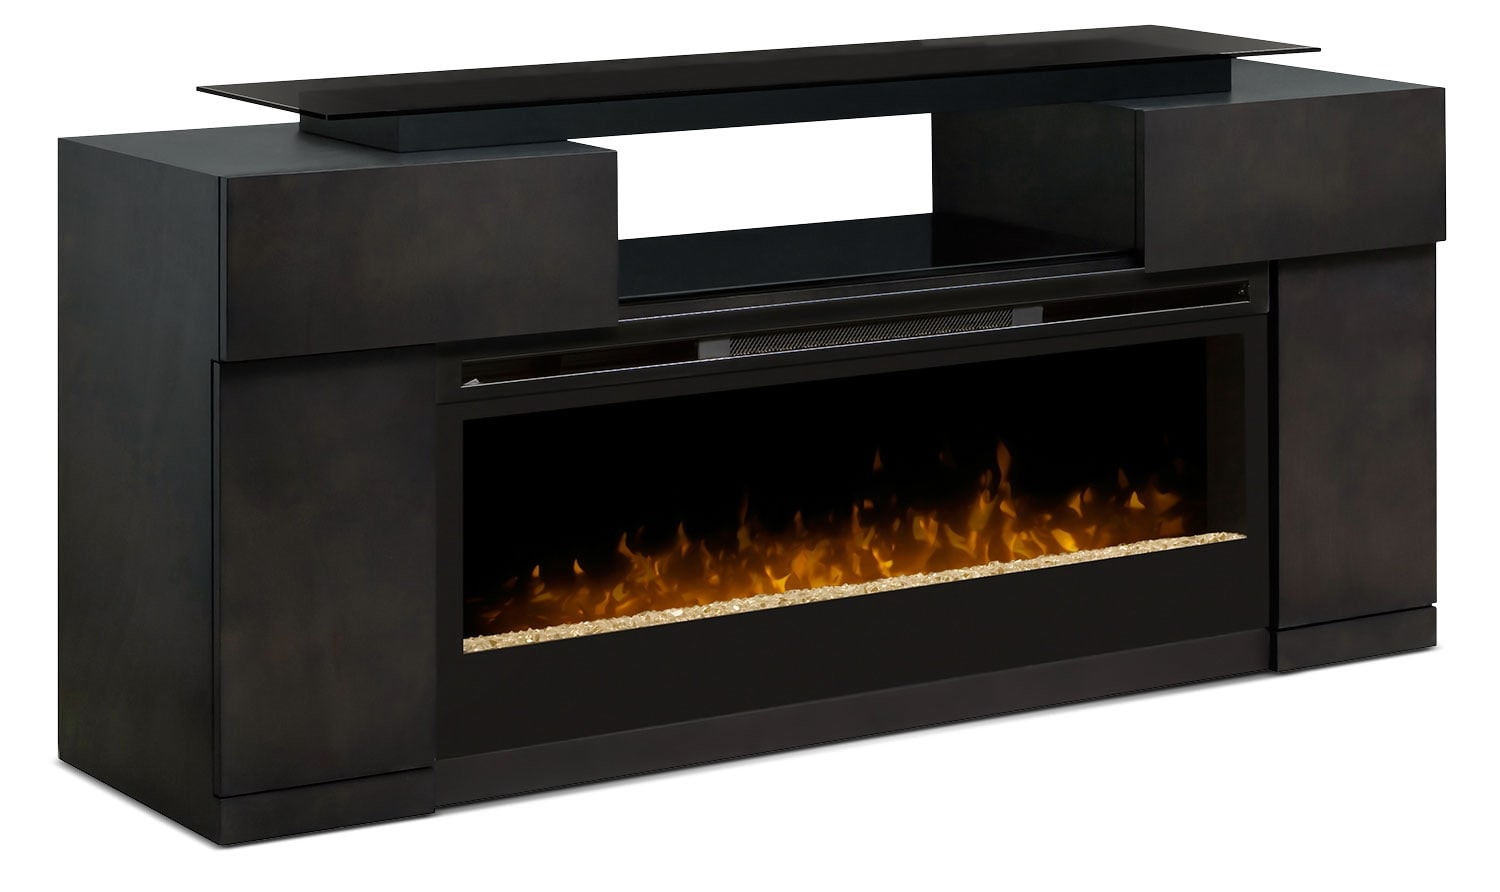 "Concord 73"" TV Stand with Glass Ember Firebox"